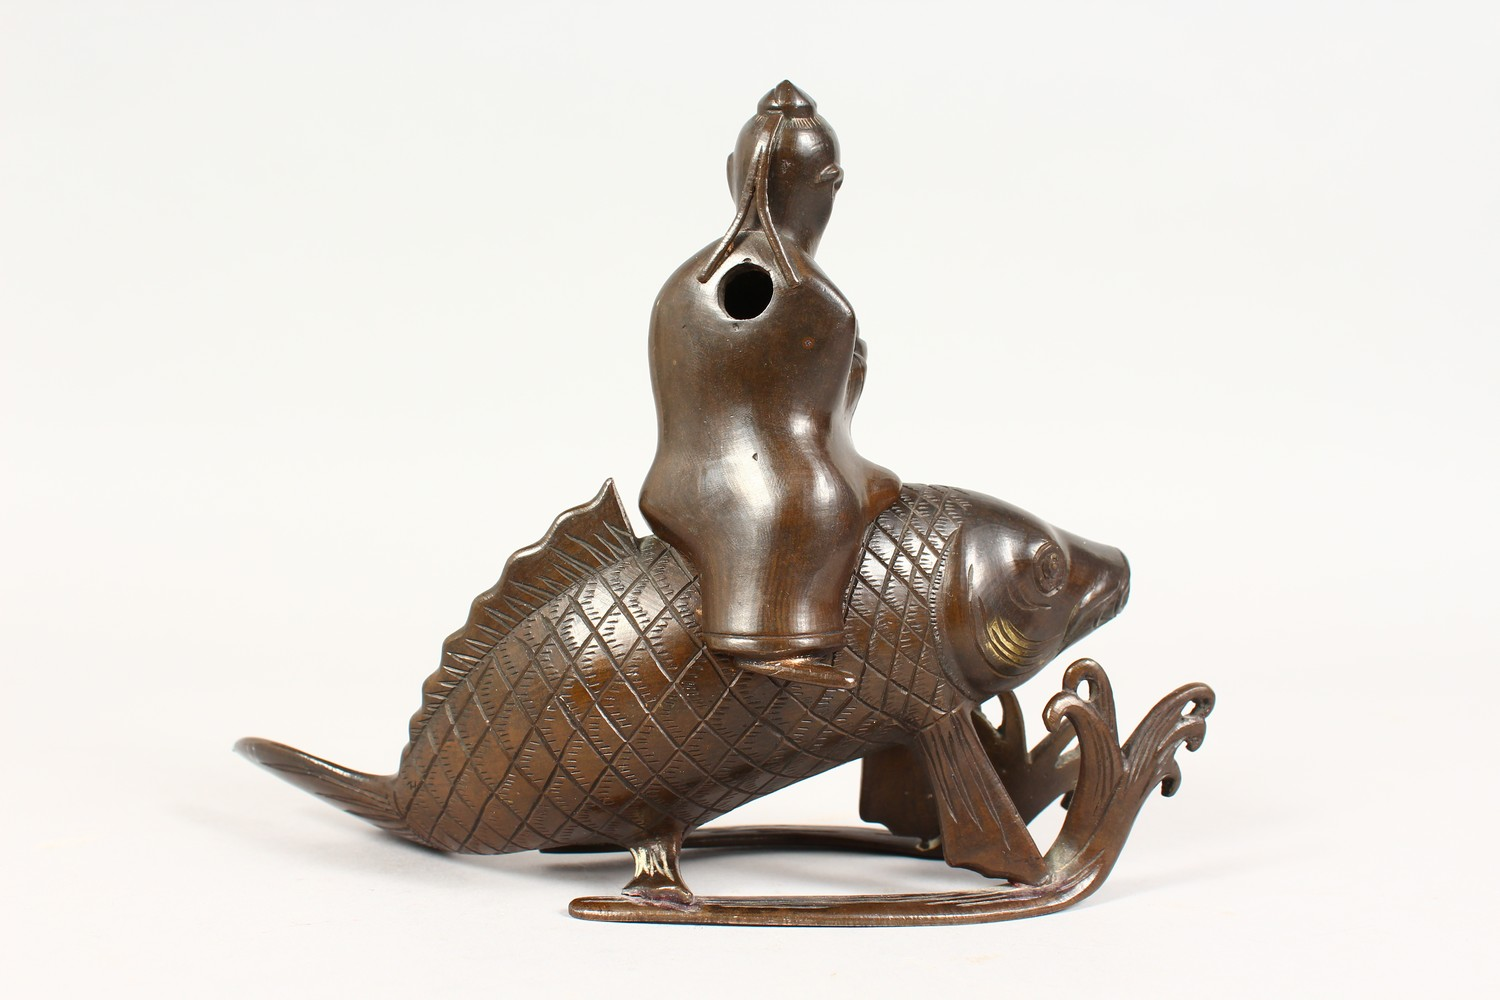 A GOOD JAPANESE MEIJI PERIOD BRONZE KORO OF EBISU - LUCKY GOD & FISH, the censer formed from the - Image 4 of 10